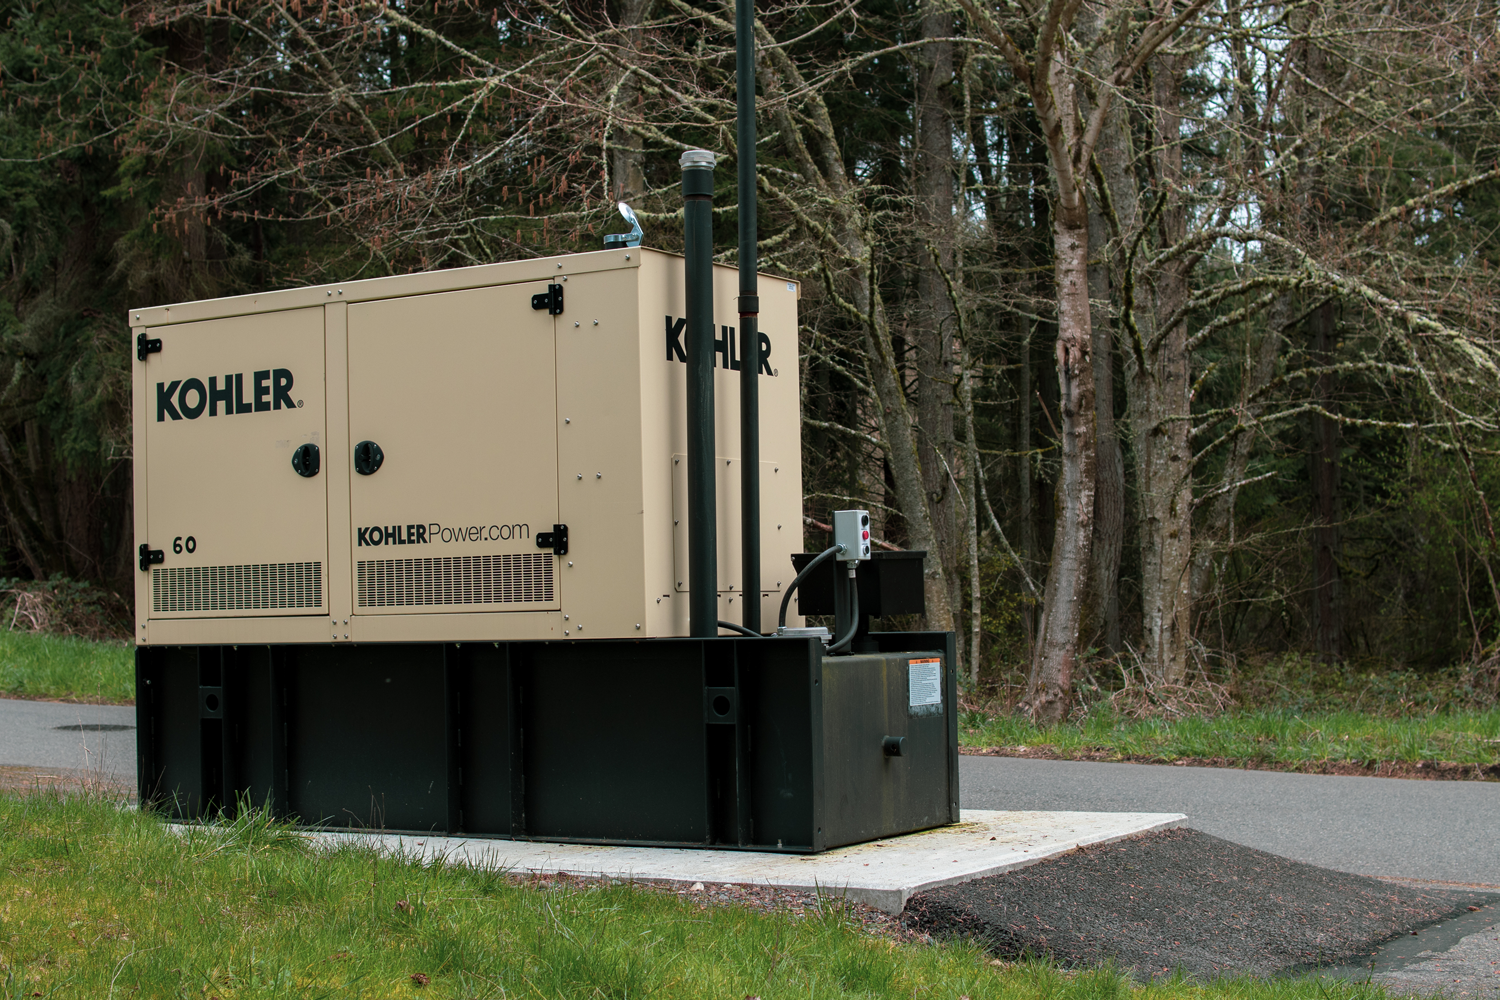 Many facilities, such as public services and hospitals, require a backup power source in order to keep delivering important services to the public. Northeast can help design these backup systems and install the proper power generation equipment needed to keep operations going without fail.